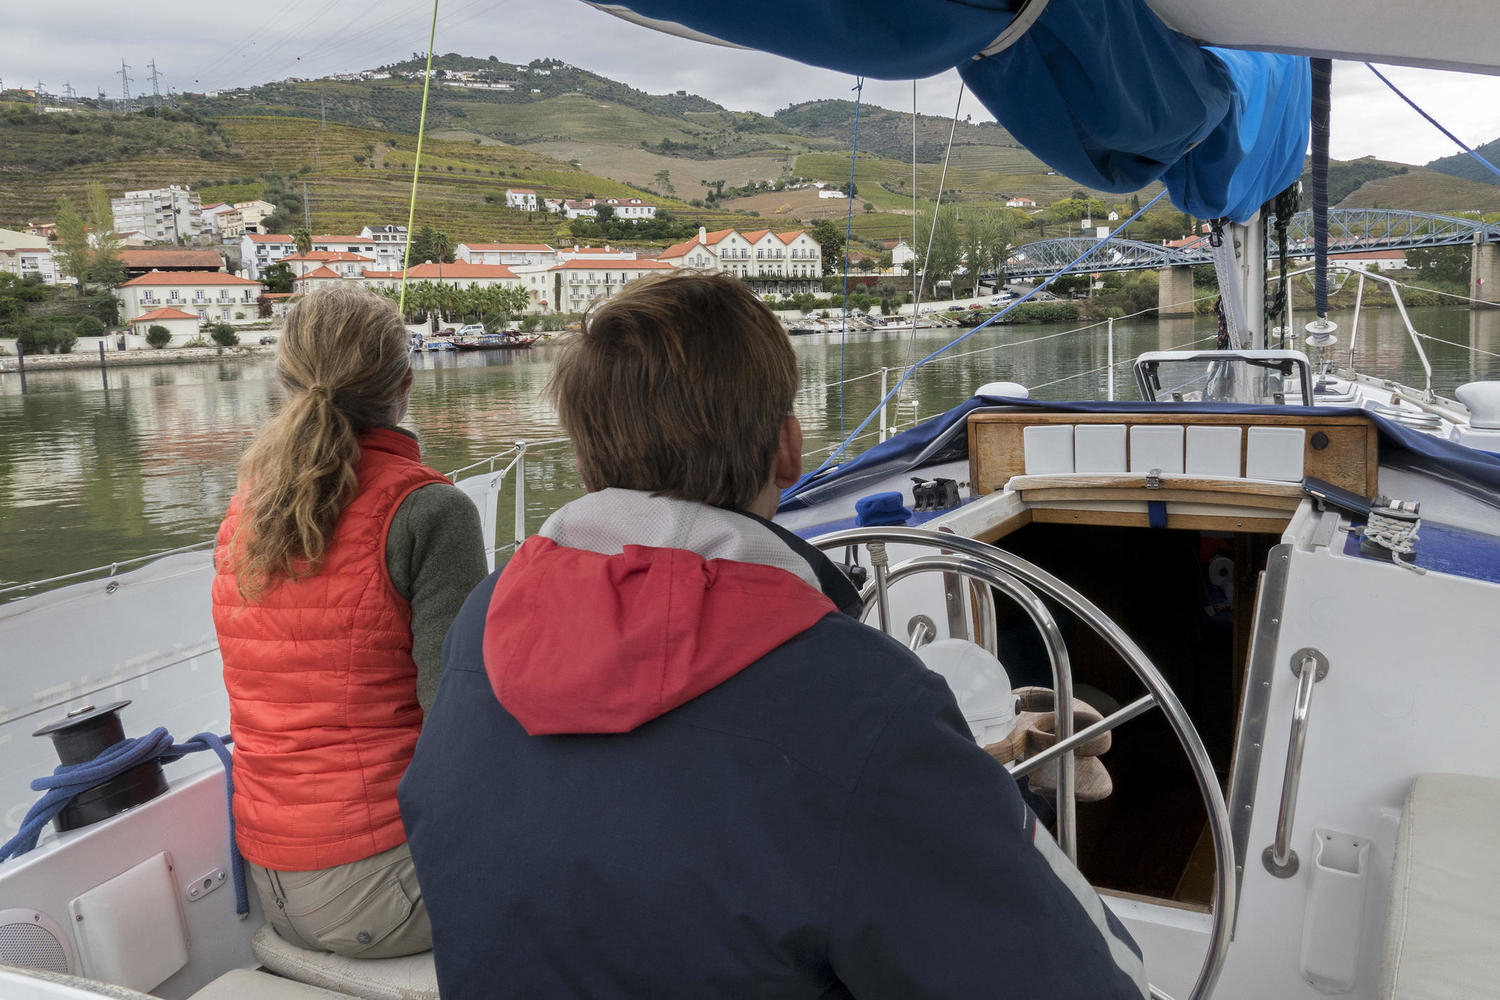 Getting onboard Paulo's boat for a personal tour along the Douro